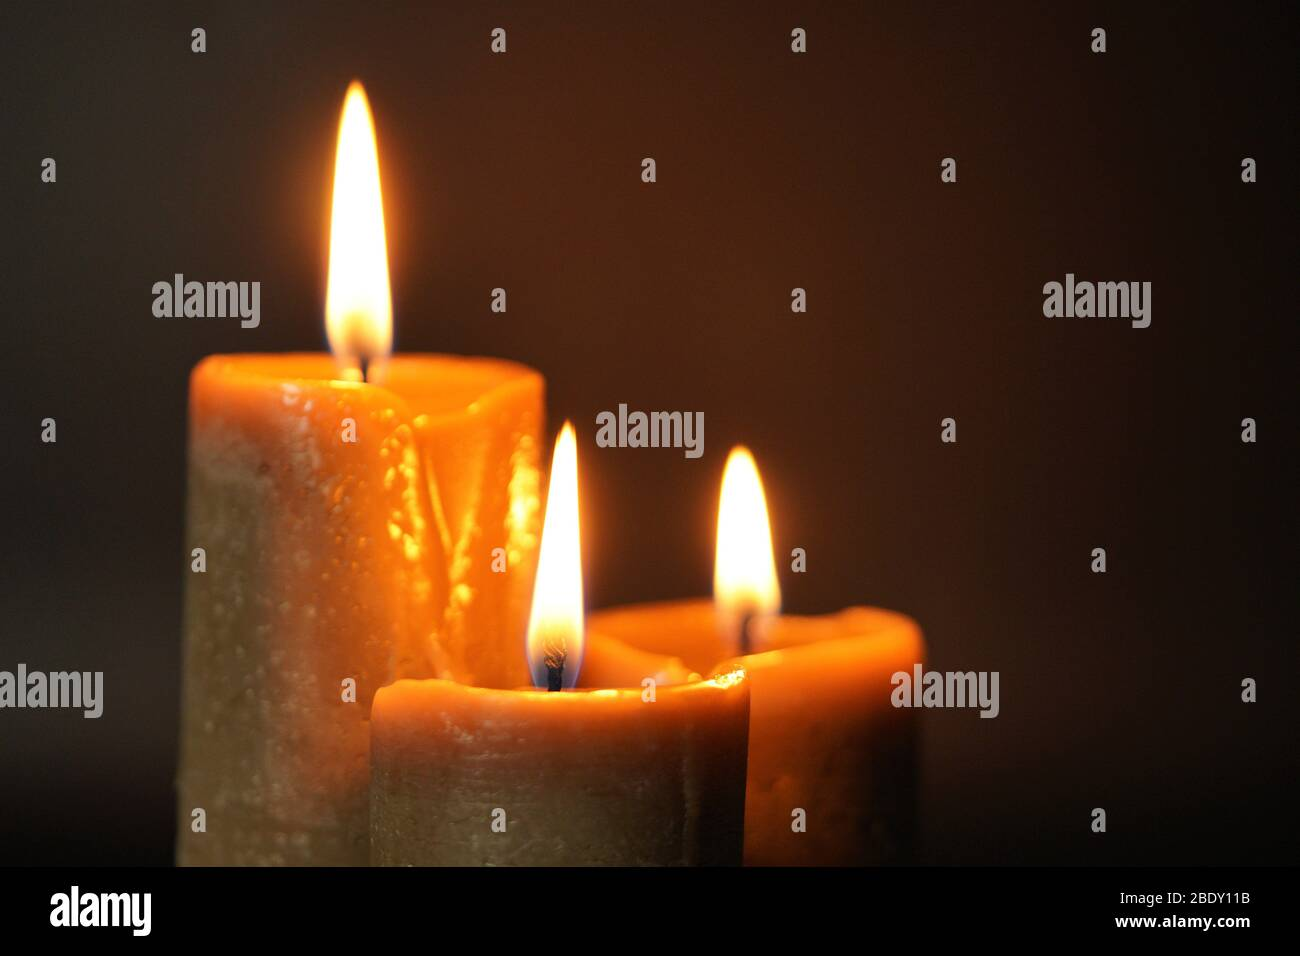 Group of three brown burning candles on a black background close-up. Concept of comfort,romance,mystic,occultism,religion,a symbol of memory.Copy Stock Photo